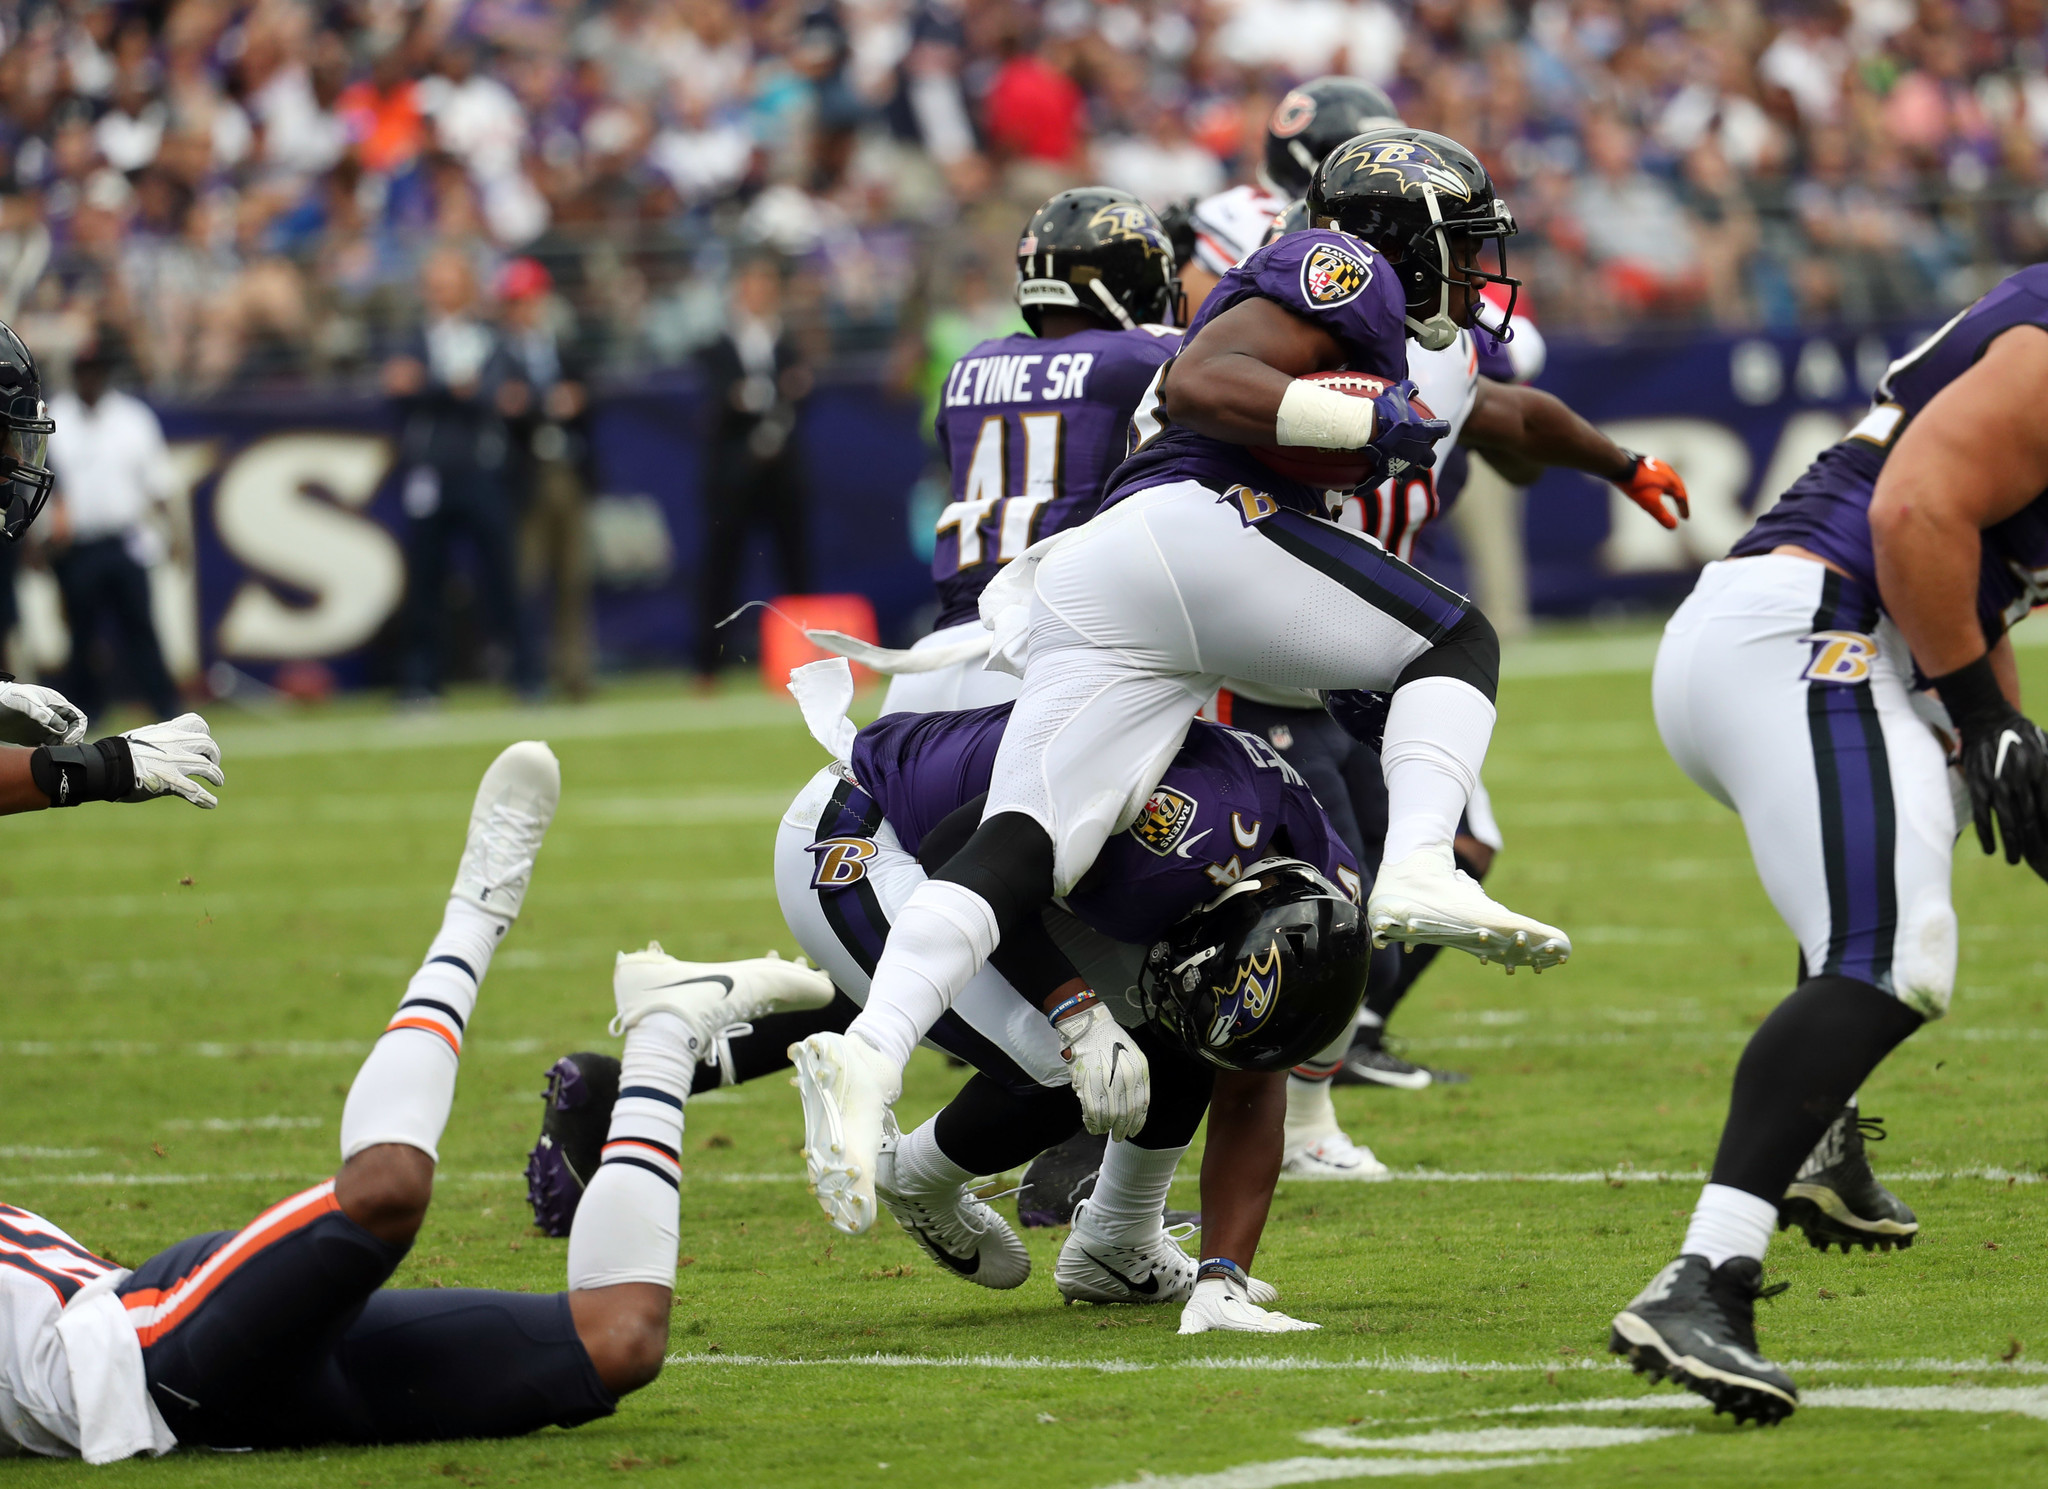 Ct-bears-special-teams-lapses-spt-1020-20171019